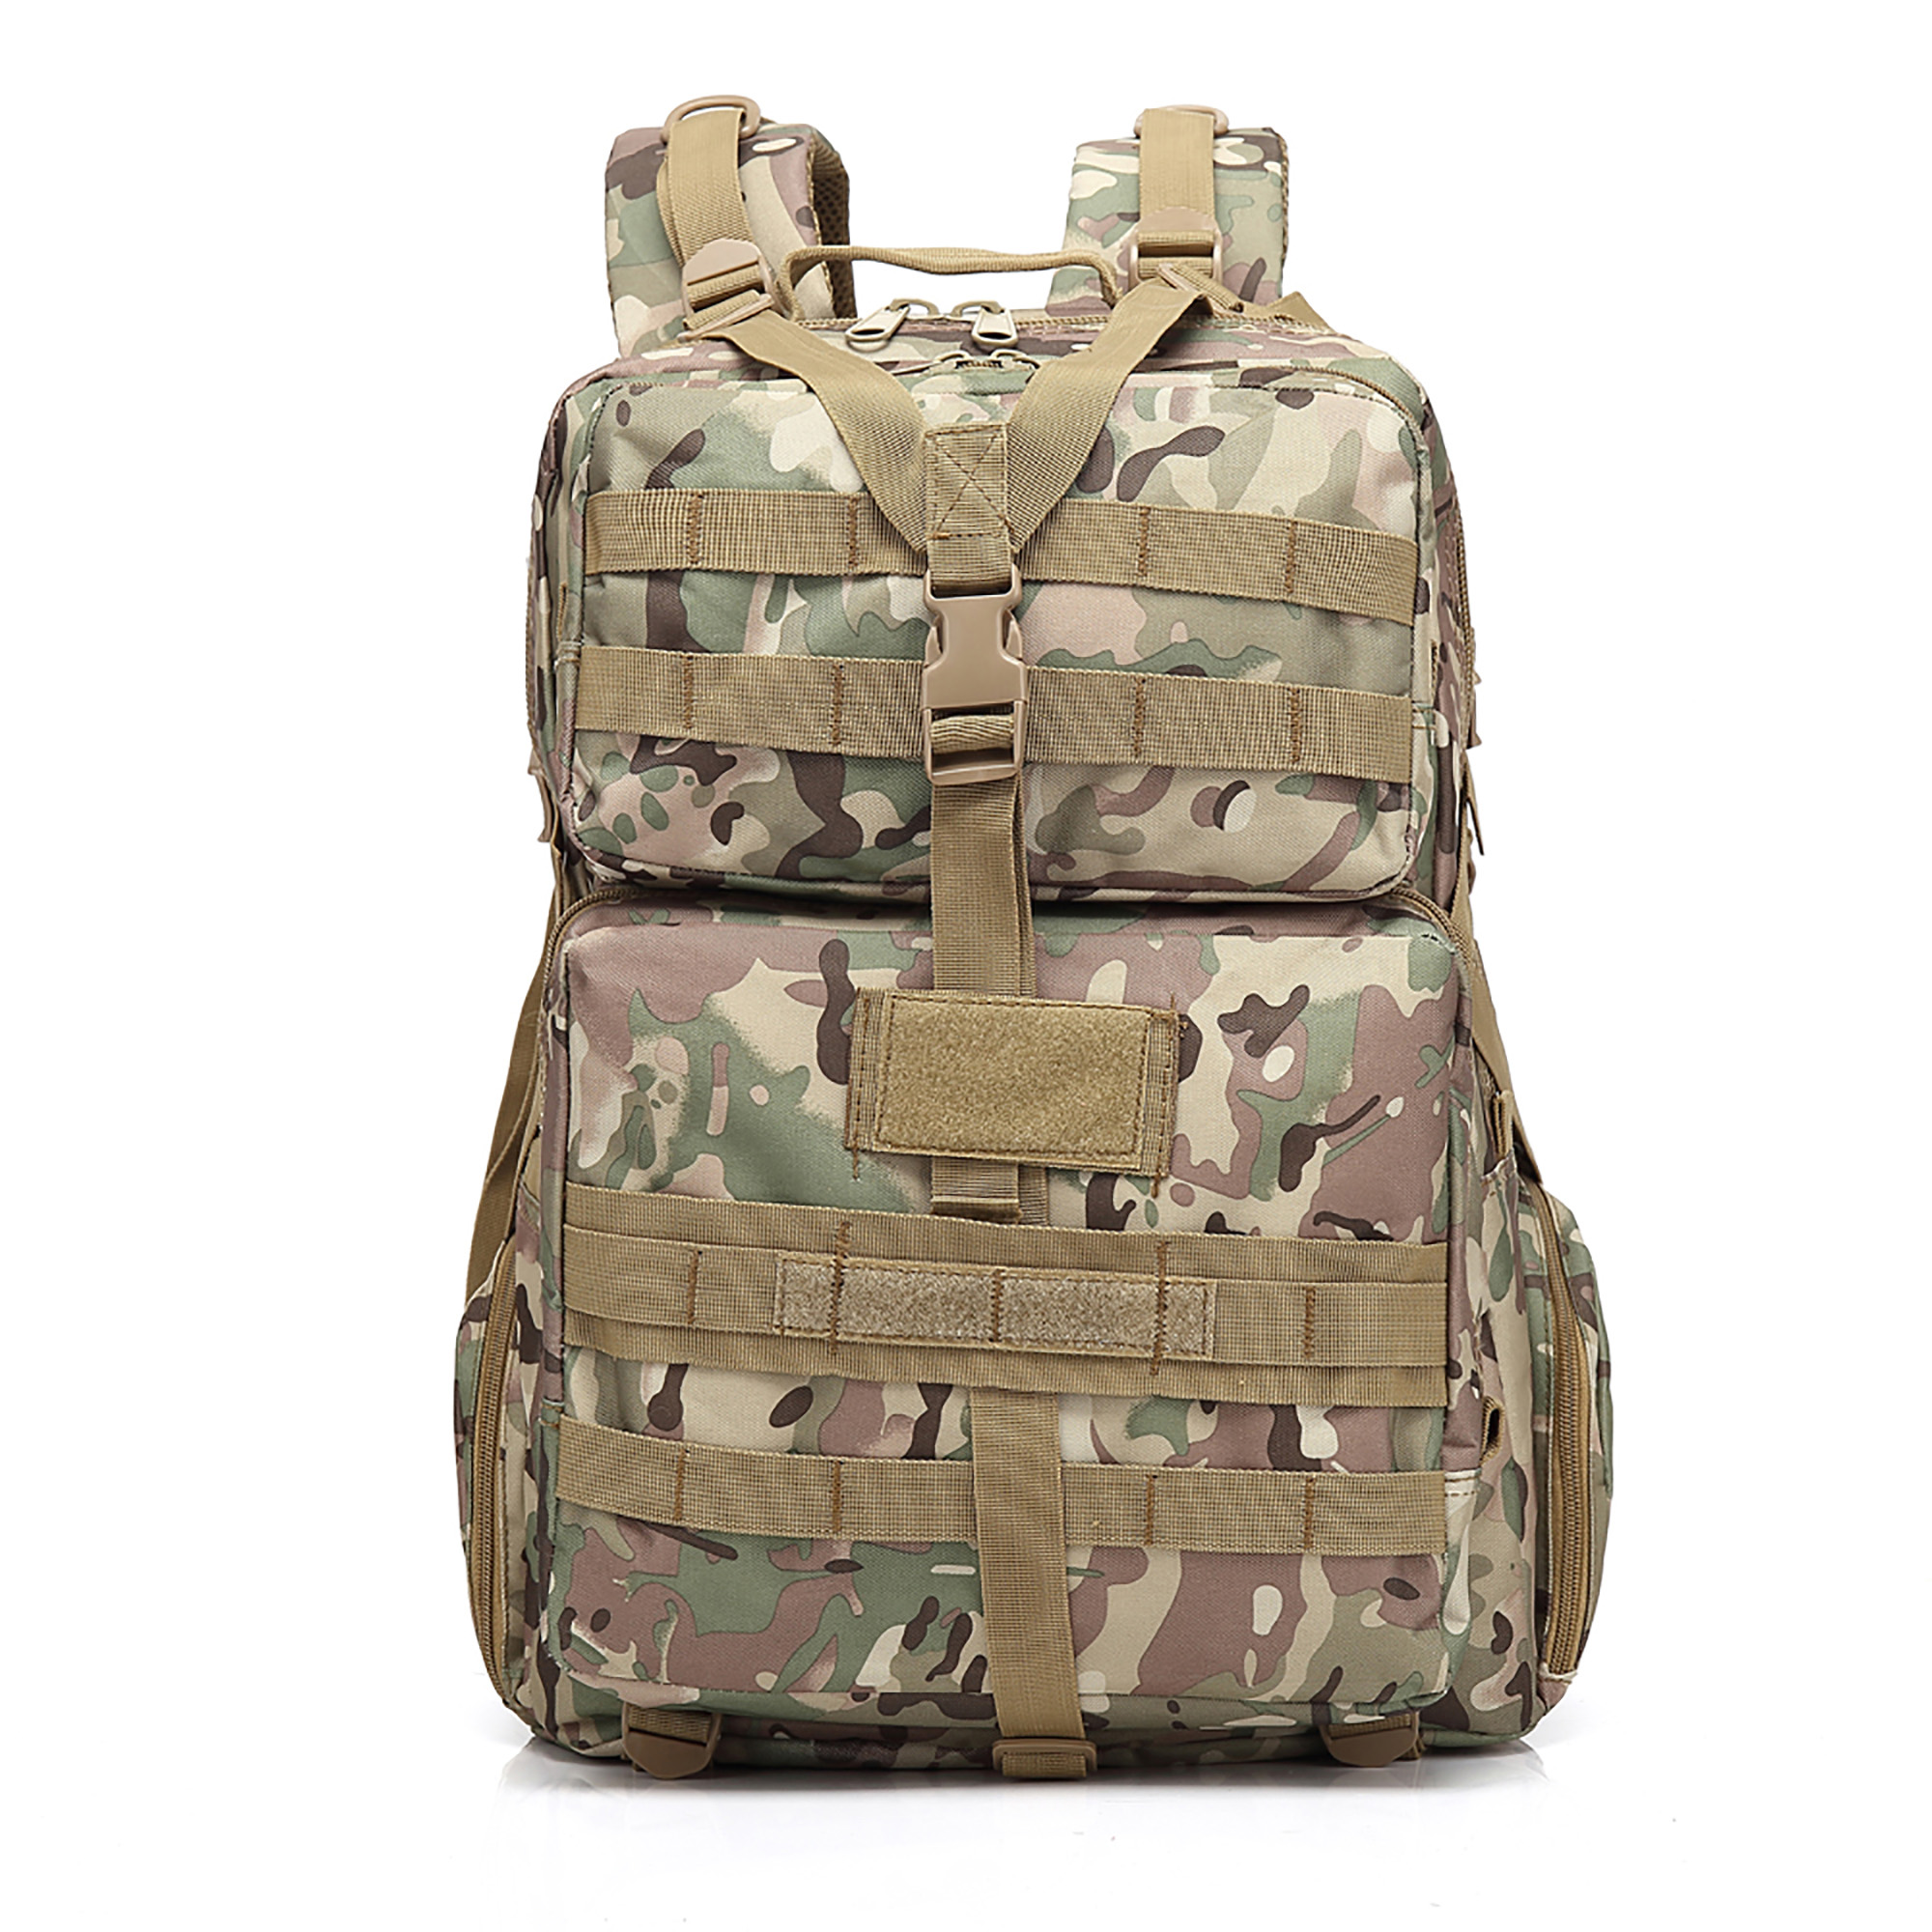 Backpacks for adults